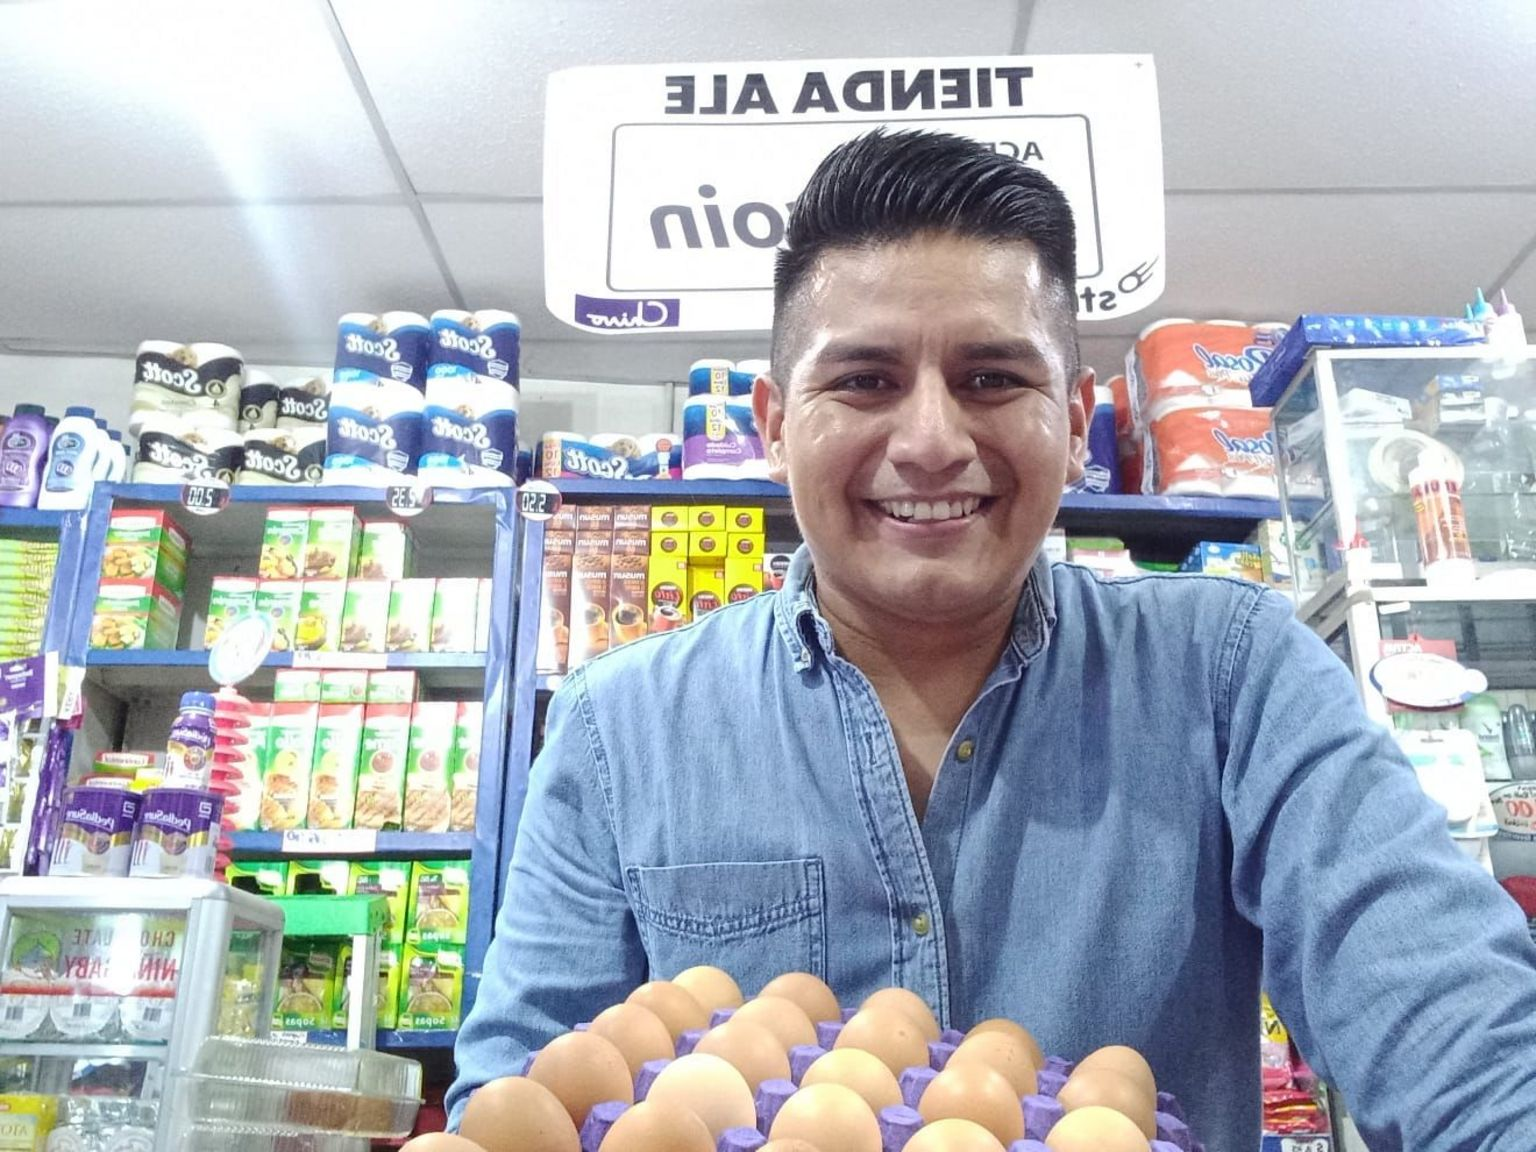 Shopkeeper Ed Hernandez says his store is likely to turn over $1000 USD each week in bitcoin payments